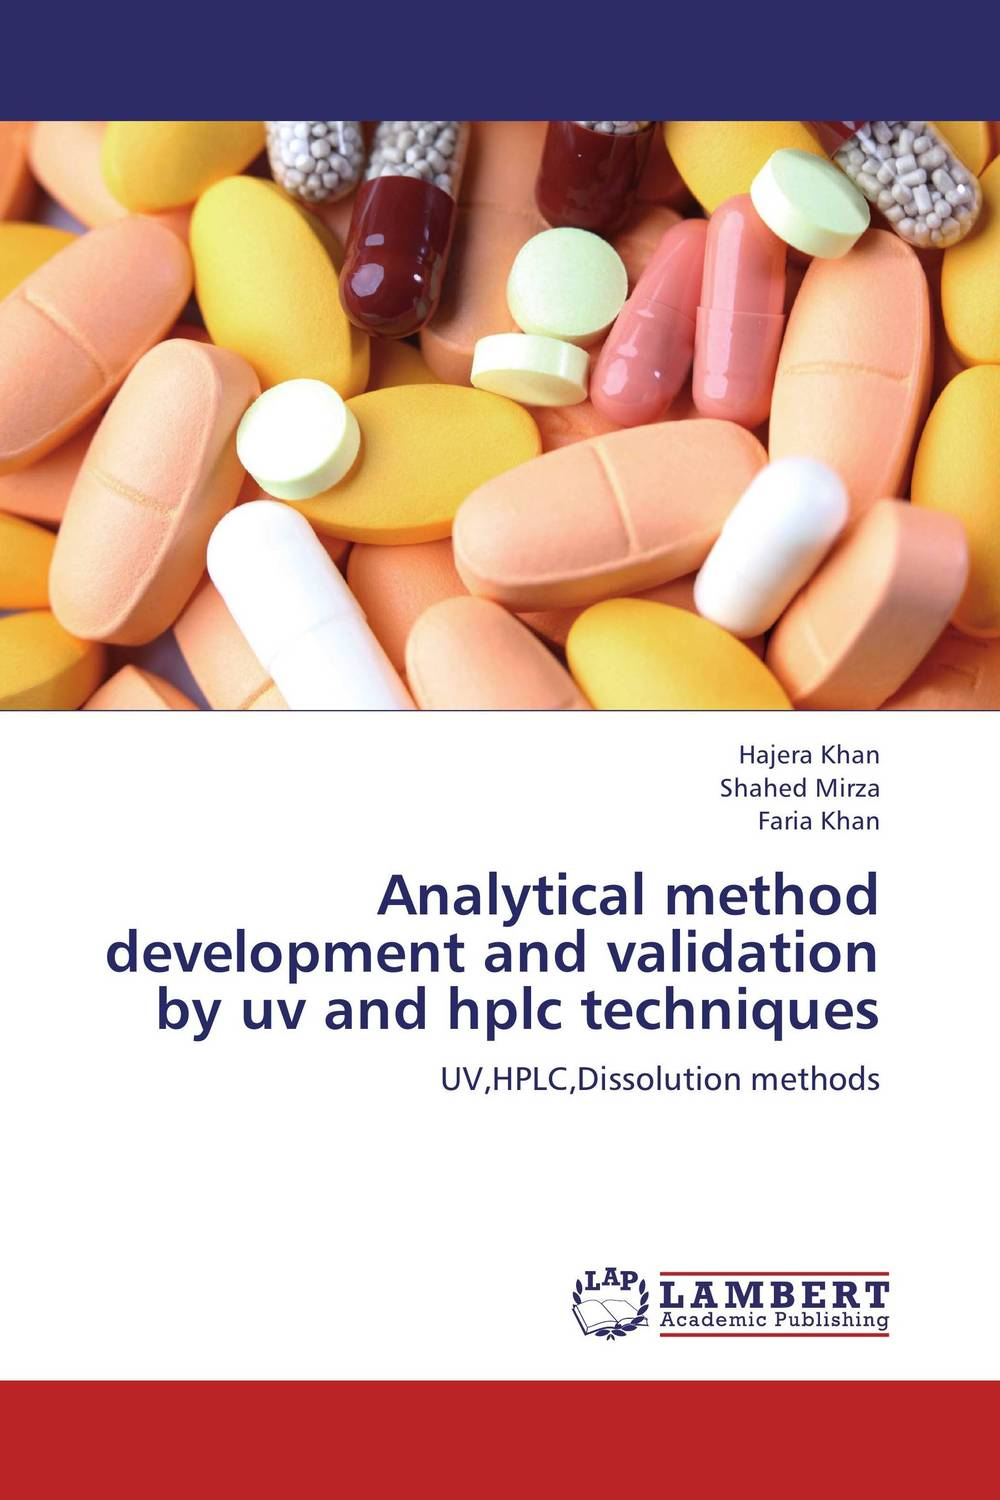 Analytical method development and validation by uv and hplc techniques  amit kumara a patel u sahoo and a k sen development and validation of anlytical methods